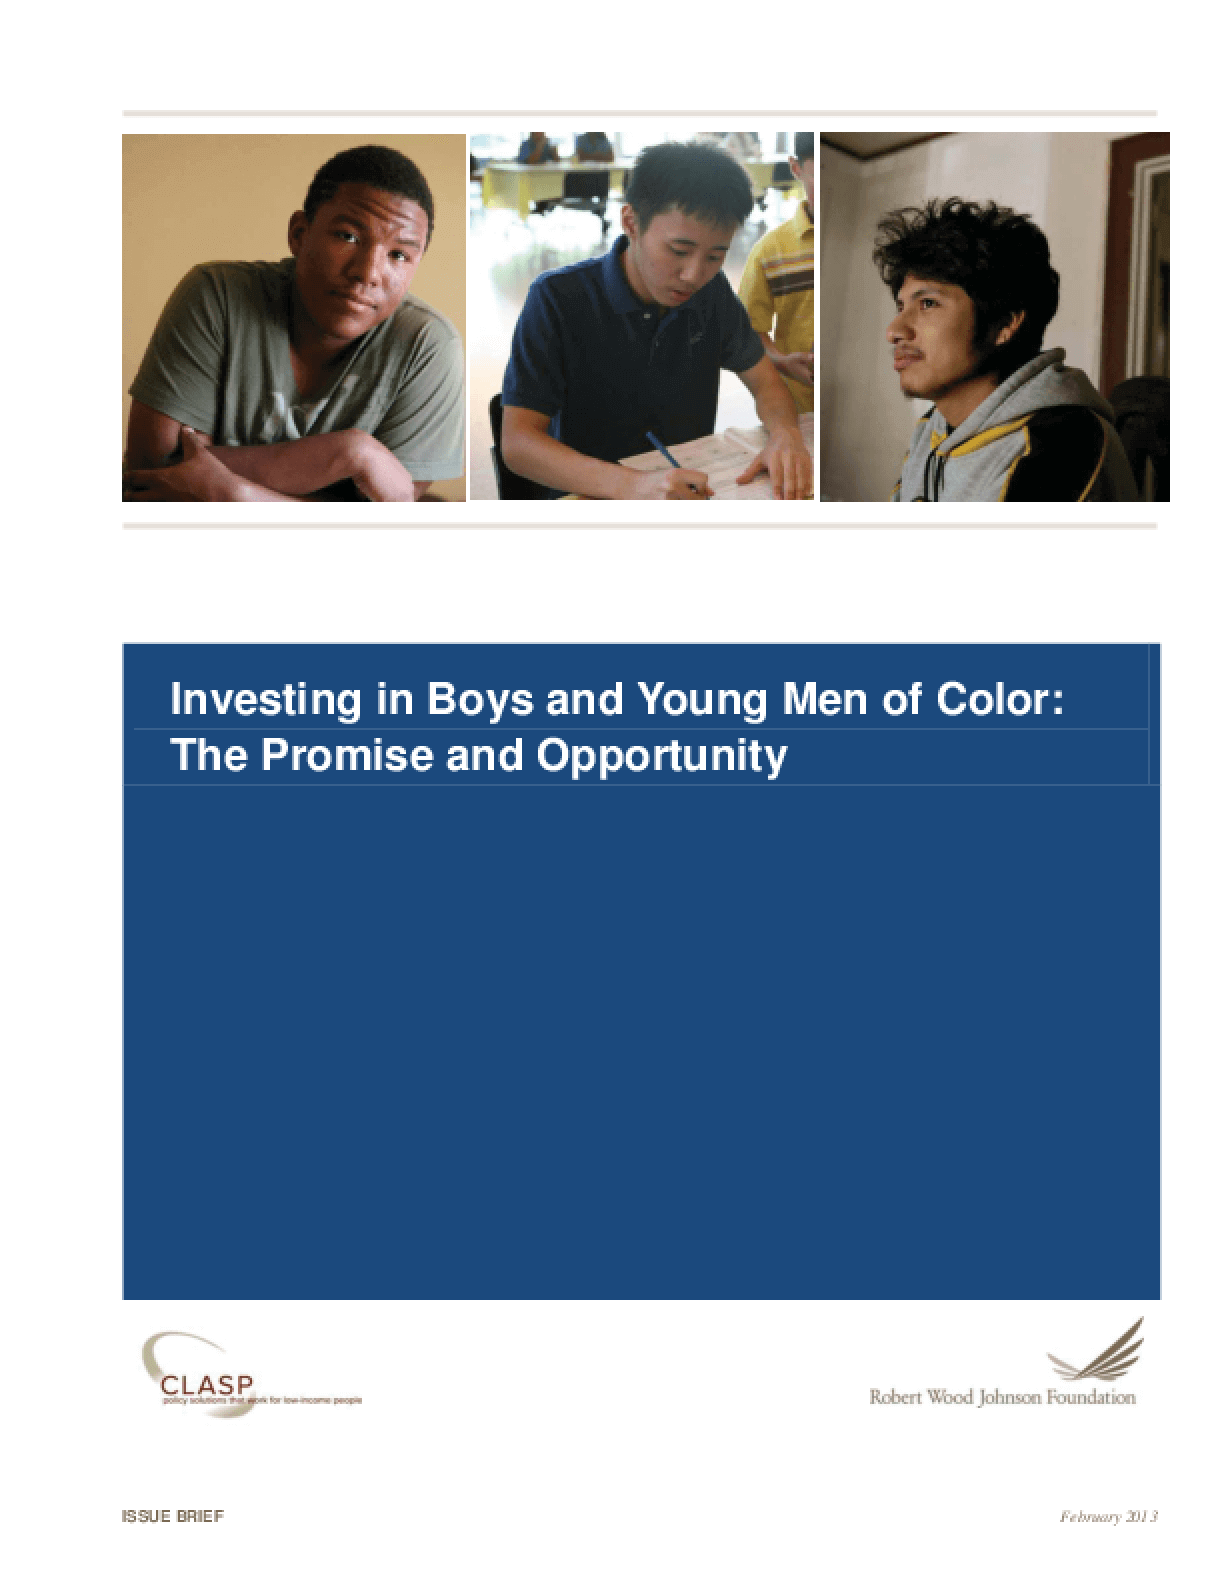 Investing in Boys and Young Men of Color: The Promise of Opportunity